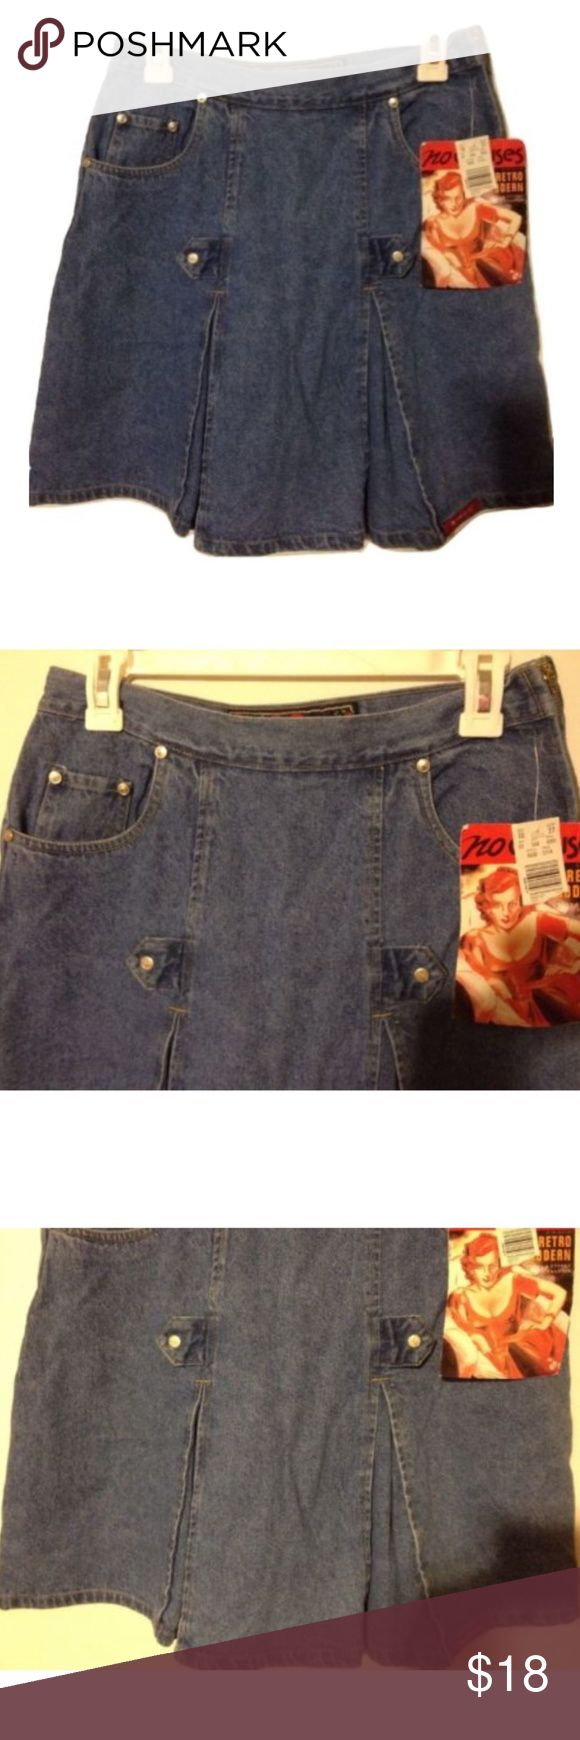 "NWT NO EXCUSES Denim Skirt Pleated 9/10 NWT NO EXCUSES Womens Skirt Denim Retro Modern 1990s Flare Pleated Sz 9/10 *Waist:  30"" or 76.2cm *Length:  18-1/2"" or 46.5cm This is a new with tags retro find from 1995!  NO EXCUSES Retro Modern Cause & Effect Fashion.  It's a great denim skirt that flares out and has two pleats in the front and a pleat in the back.  Two front pockets & a smaller change pocket tucked behind one of them. Skirts Midi"